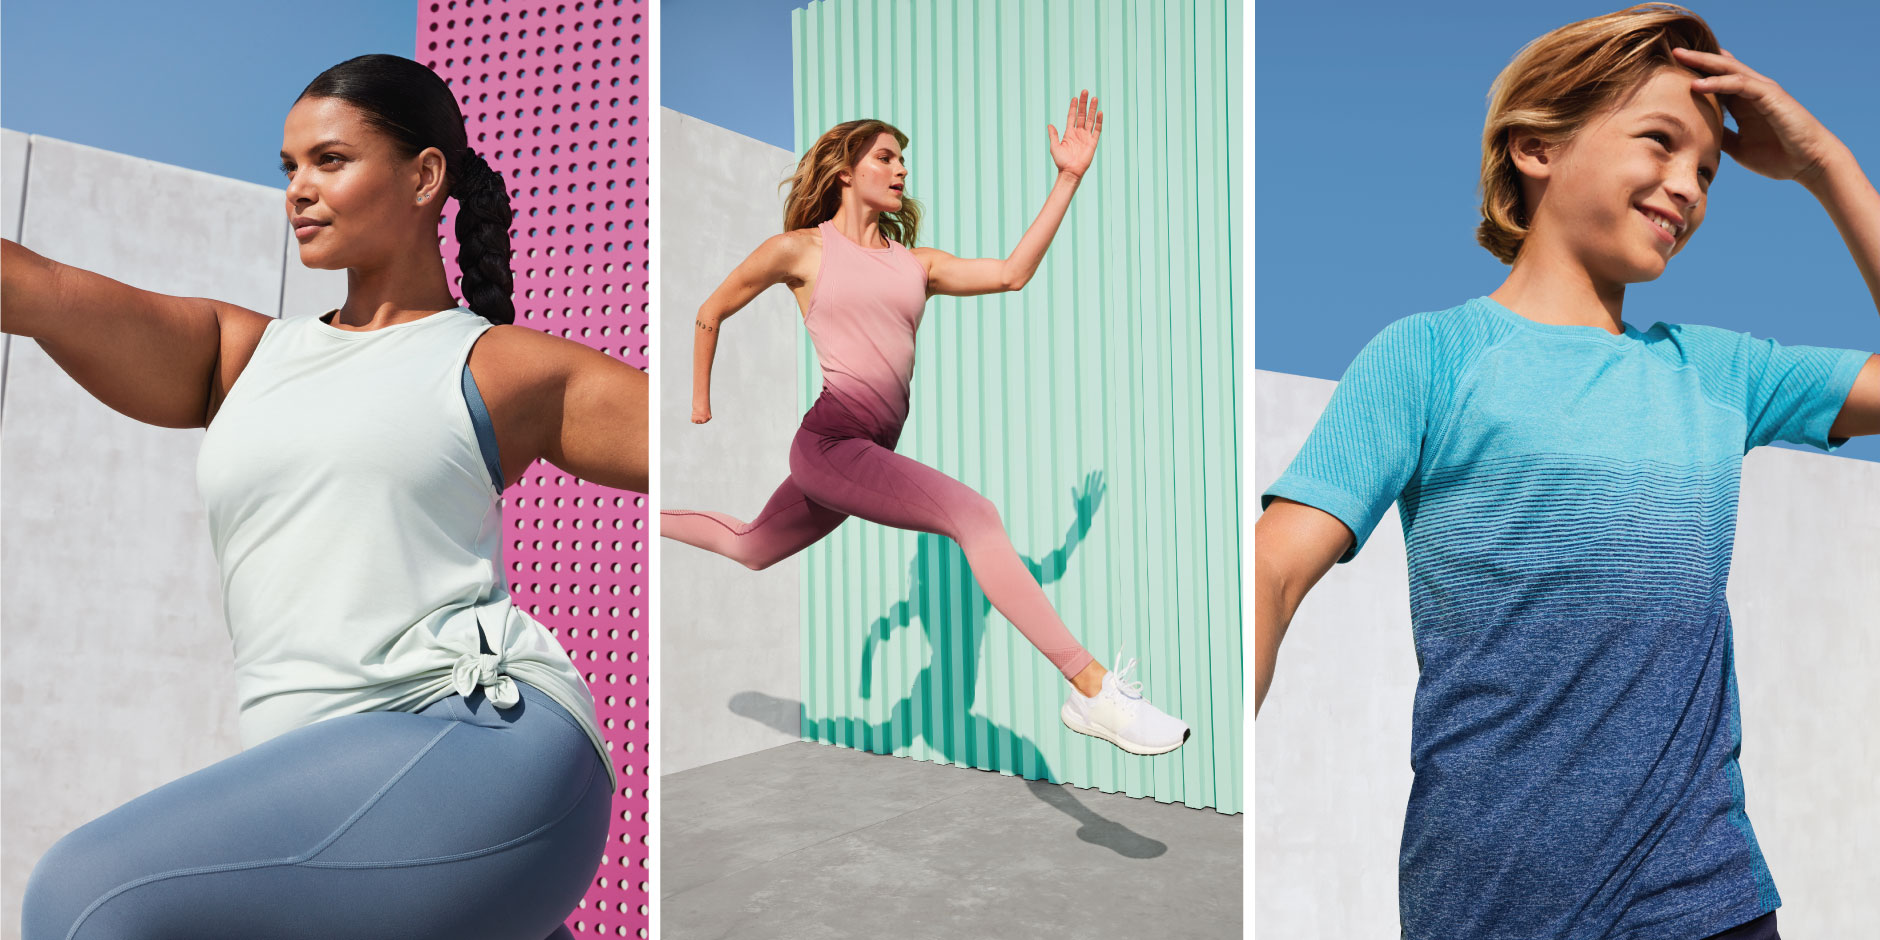 A three-photo image collage shows two women and a young boy jumping and running in activewear